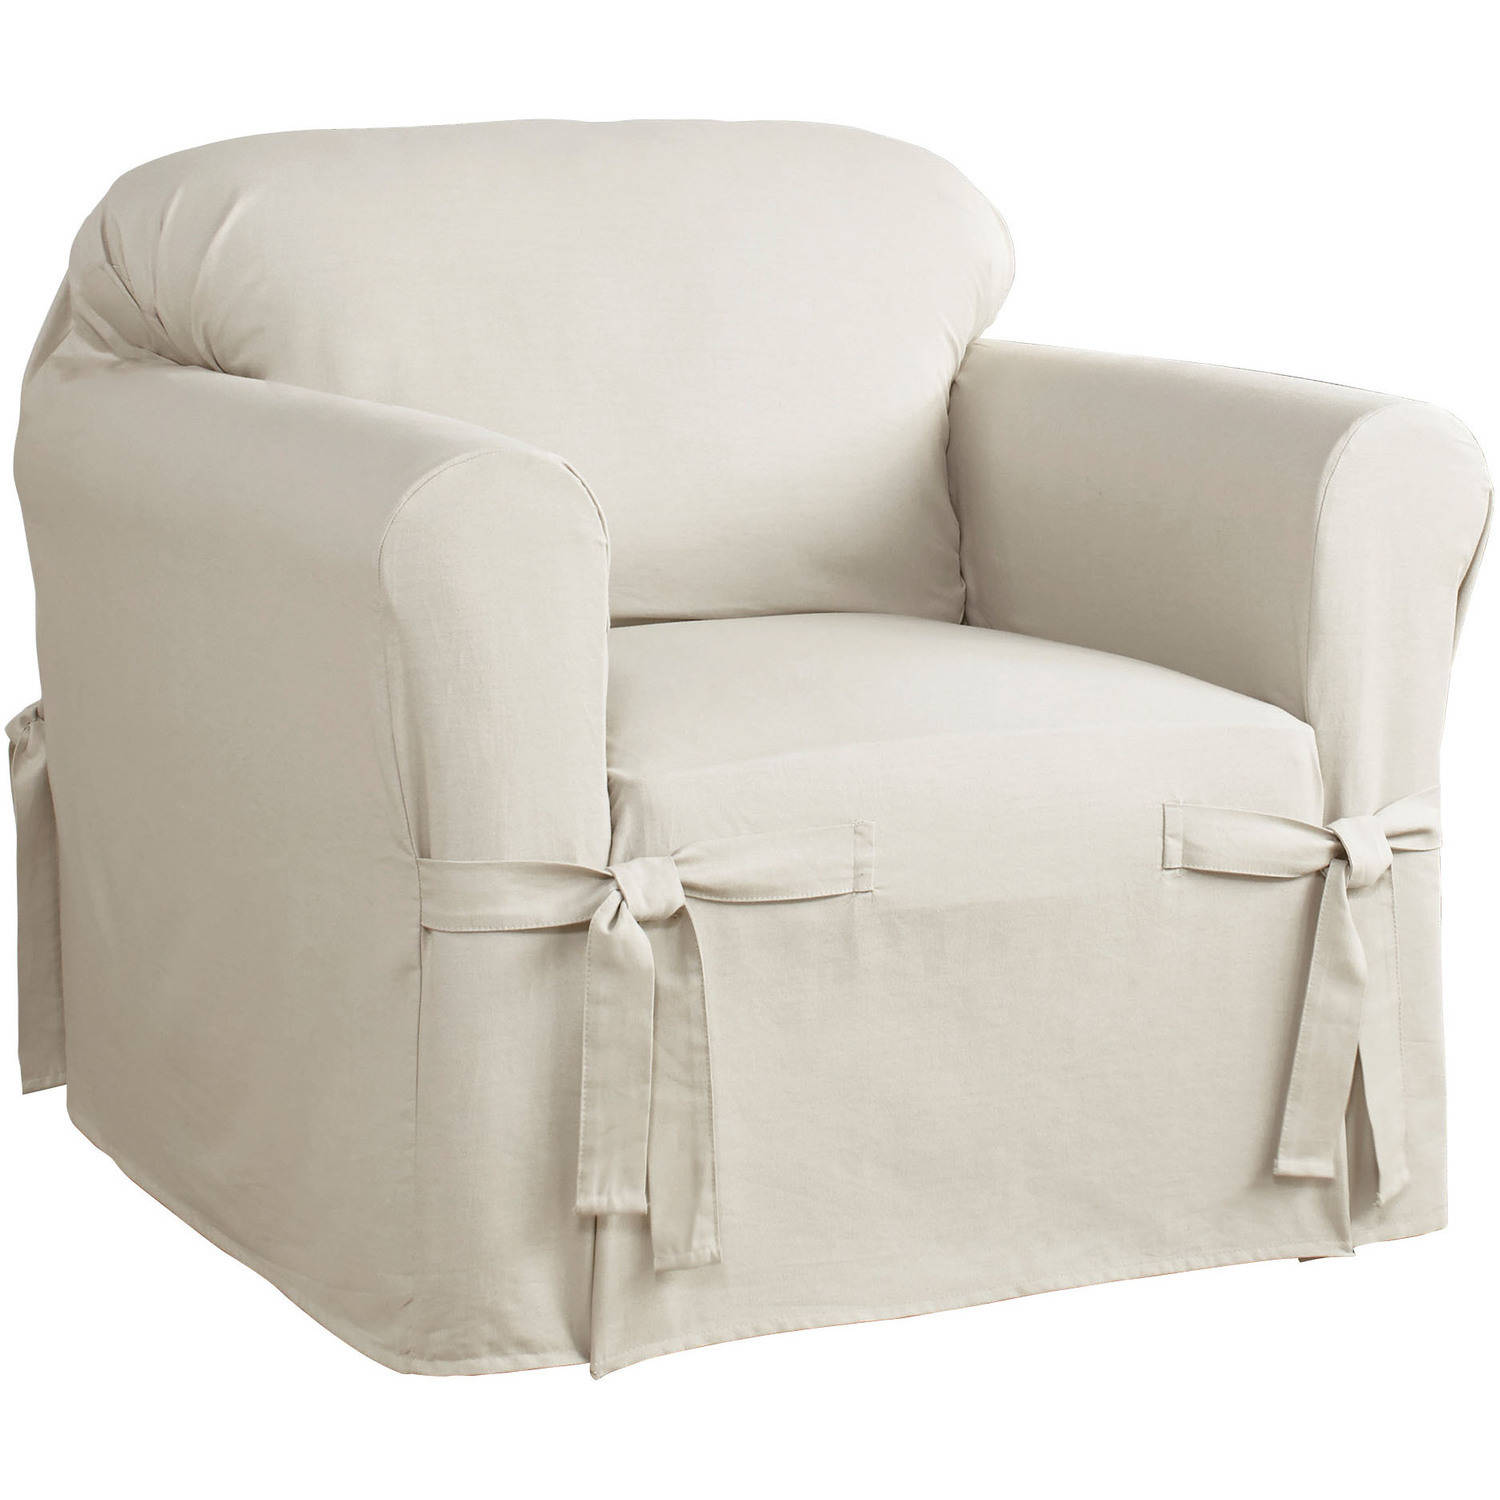 Slip Covers For Chairs Serta Relaxed Fit Cotton Duck Furniture Slipcover Chair 1 Piece Box Cushion